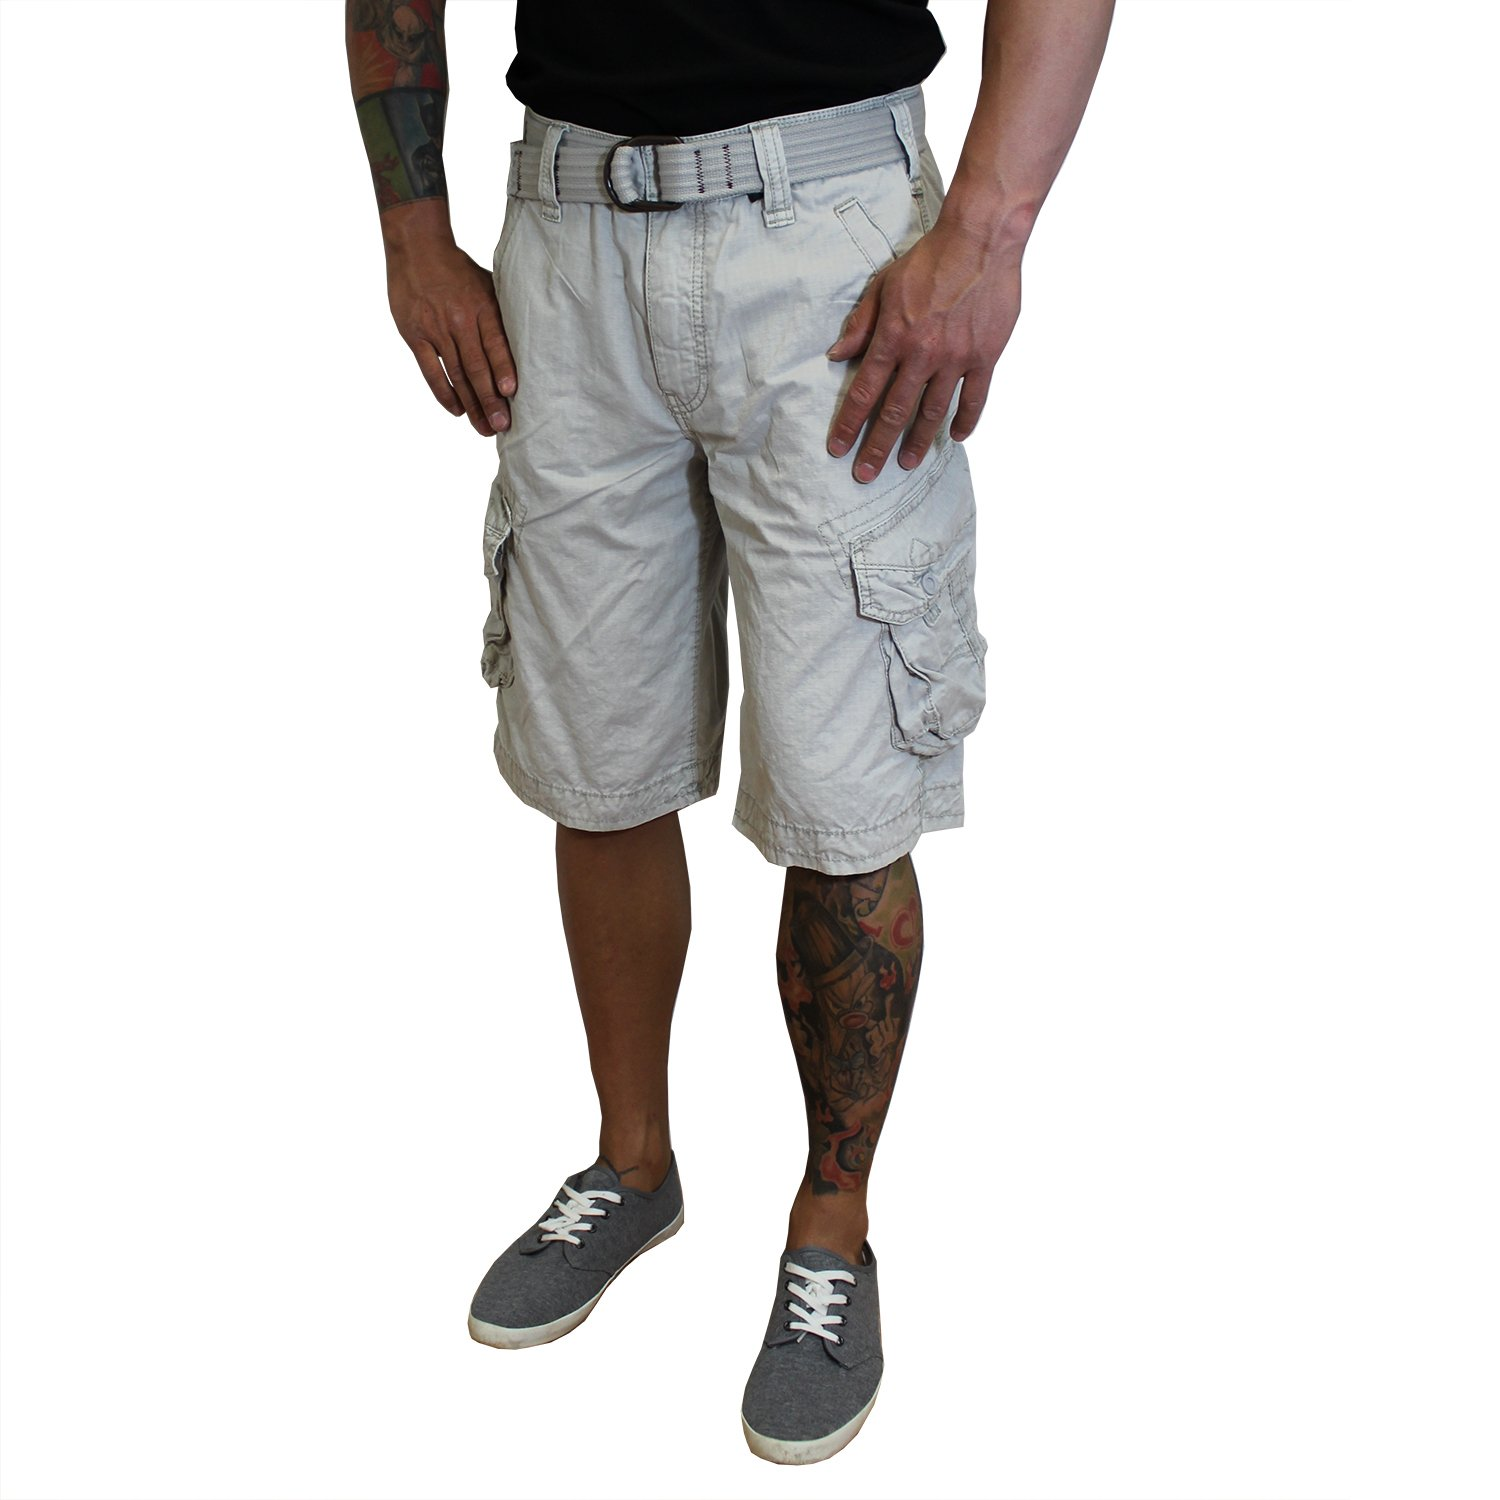 Stone Jet Lag Shorts Take off 3 kurze Hose in charcoal cement Schwarzolive camouflage